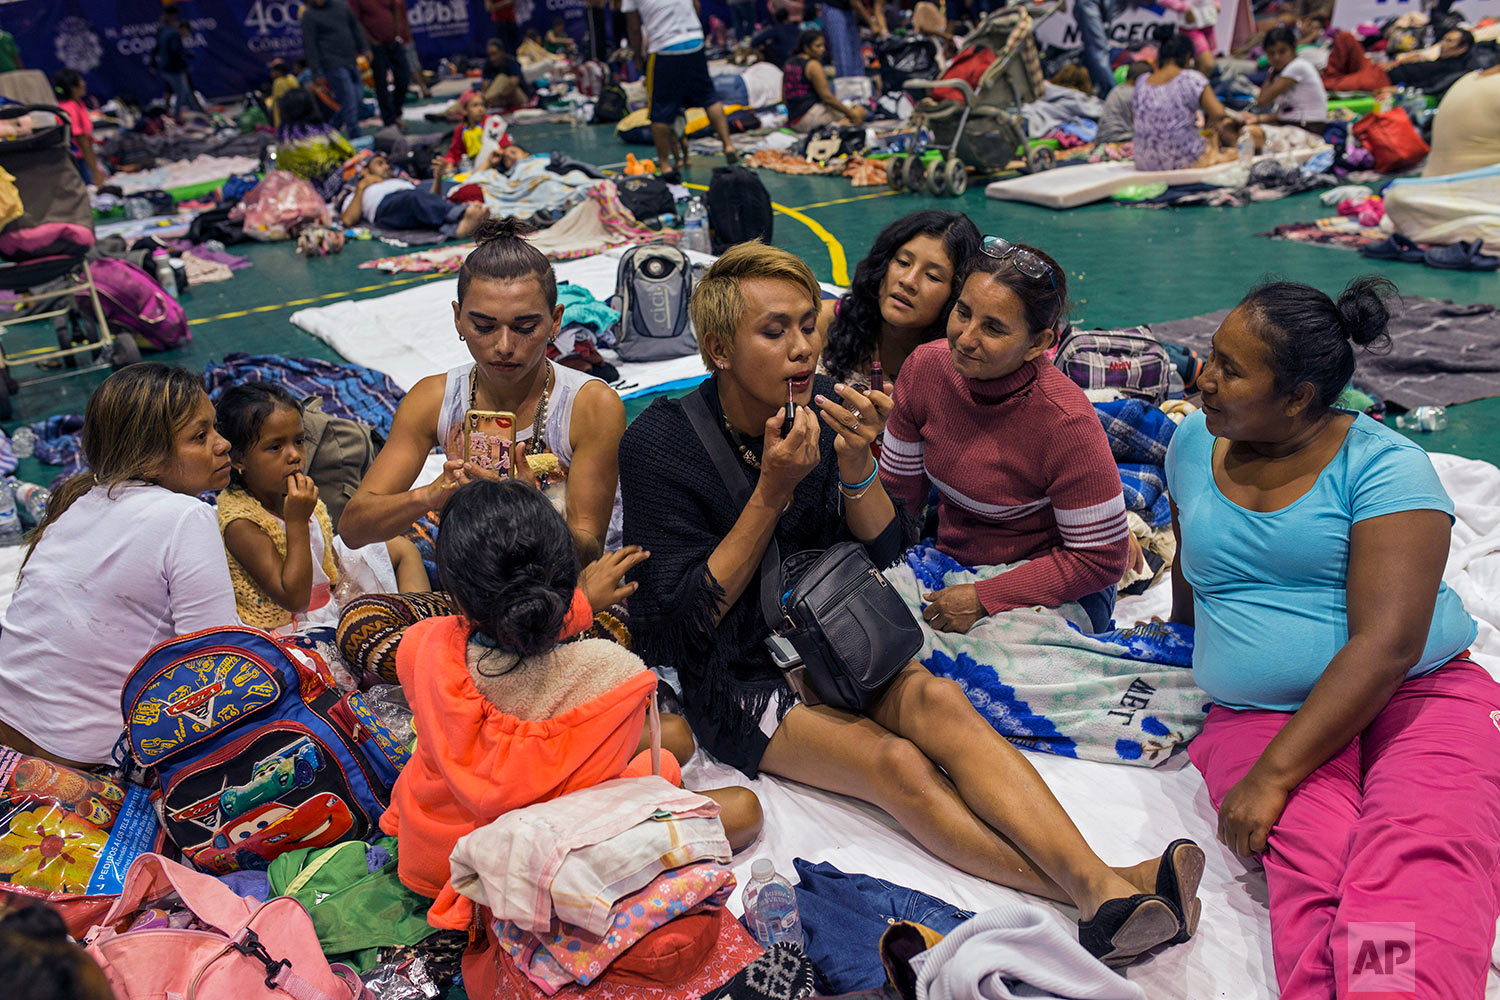 In this Nov. 4, 2018 photo, two transgender women who are part of a group of 50 or so LGBTQ migrants traveling with the migrant caravan hoping to reach the U.S. border, apply face makeup at a shelter in Cordoba, Mexico. (AP Photo/Rodrigo Abd)